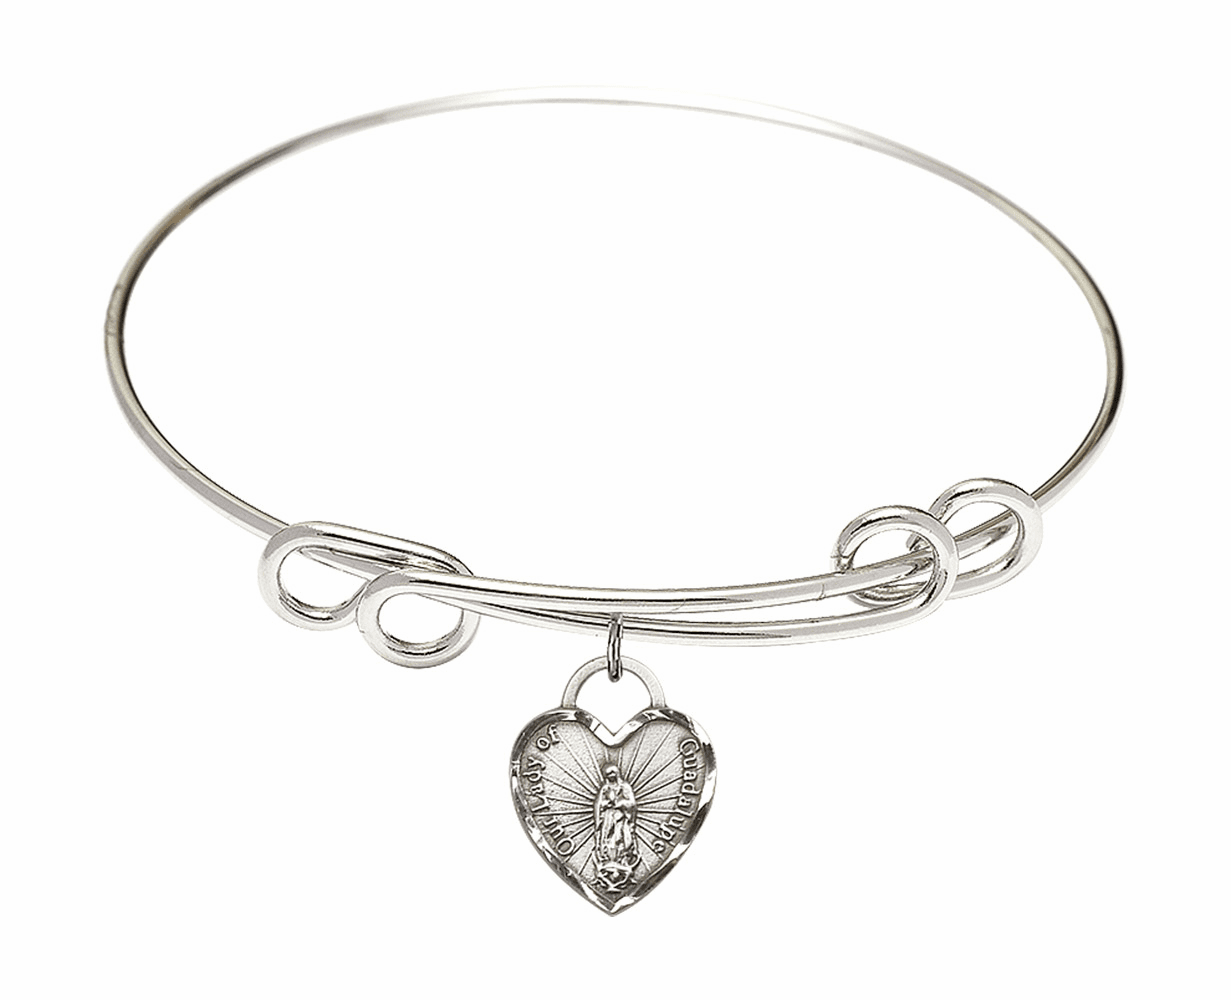 Round Double Loop Bangle Bracelet w/Our Lady of Guadalupe Heart Sterling Silver Charm by Bliss Mfg